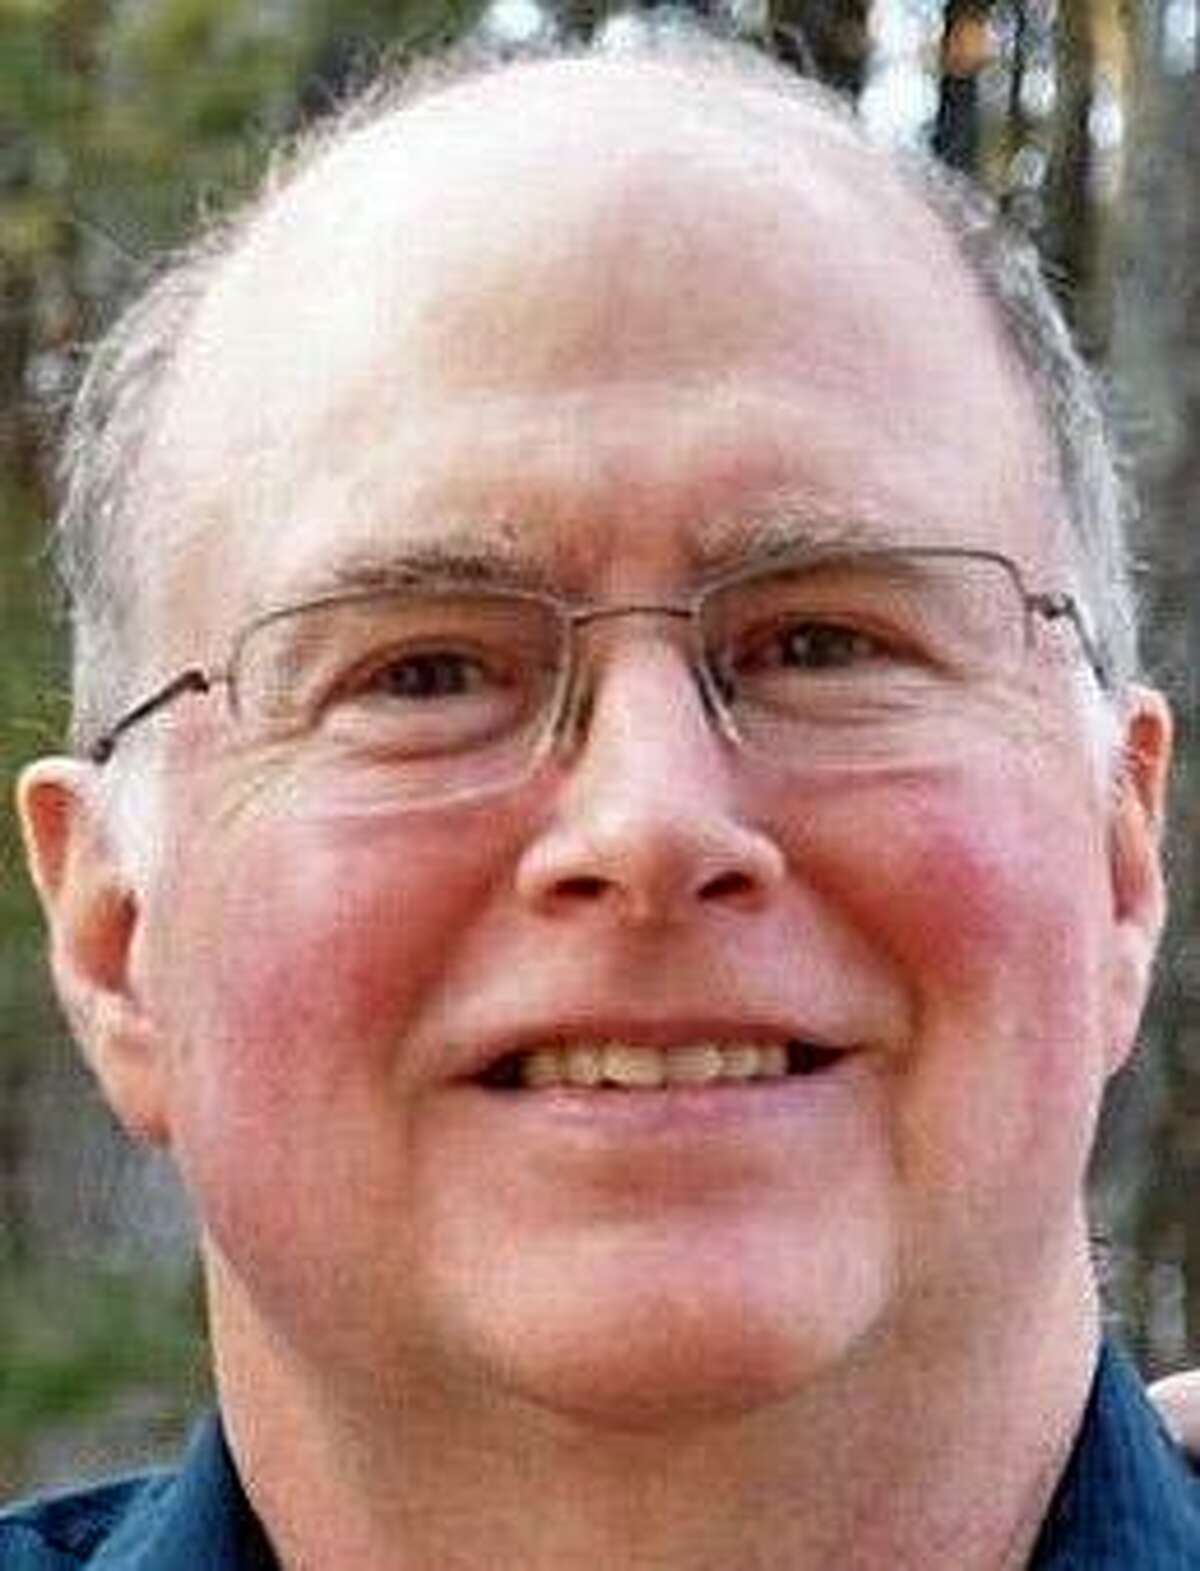 The family of Stephen Patrick Regan, the 62-year-old man, who was killed in a fall from the Sikorsky Memorial Bridge last week, has asked that donation be made to a mental health organization.